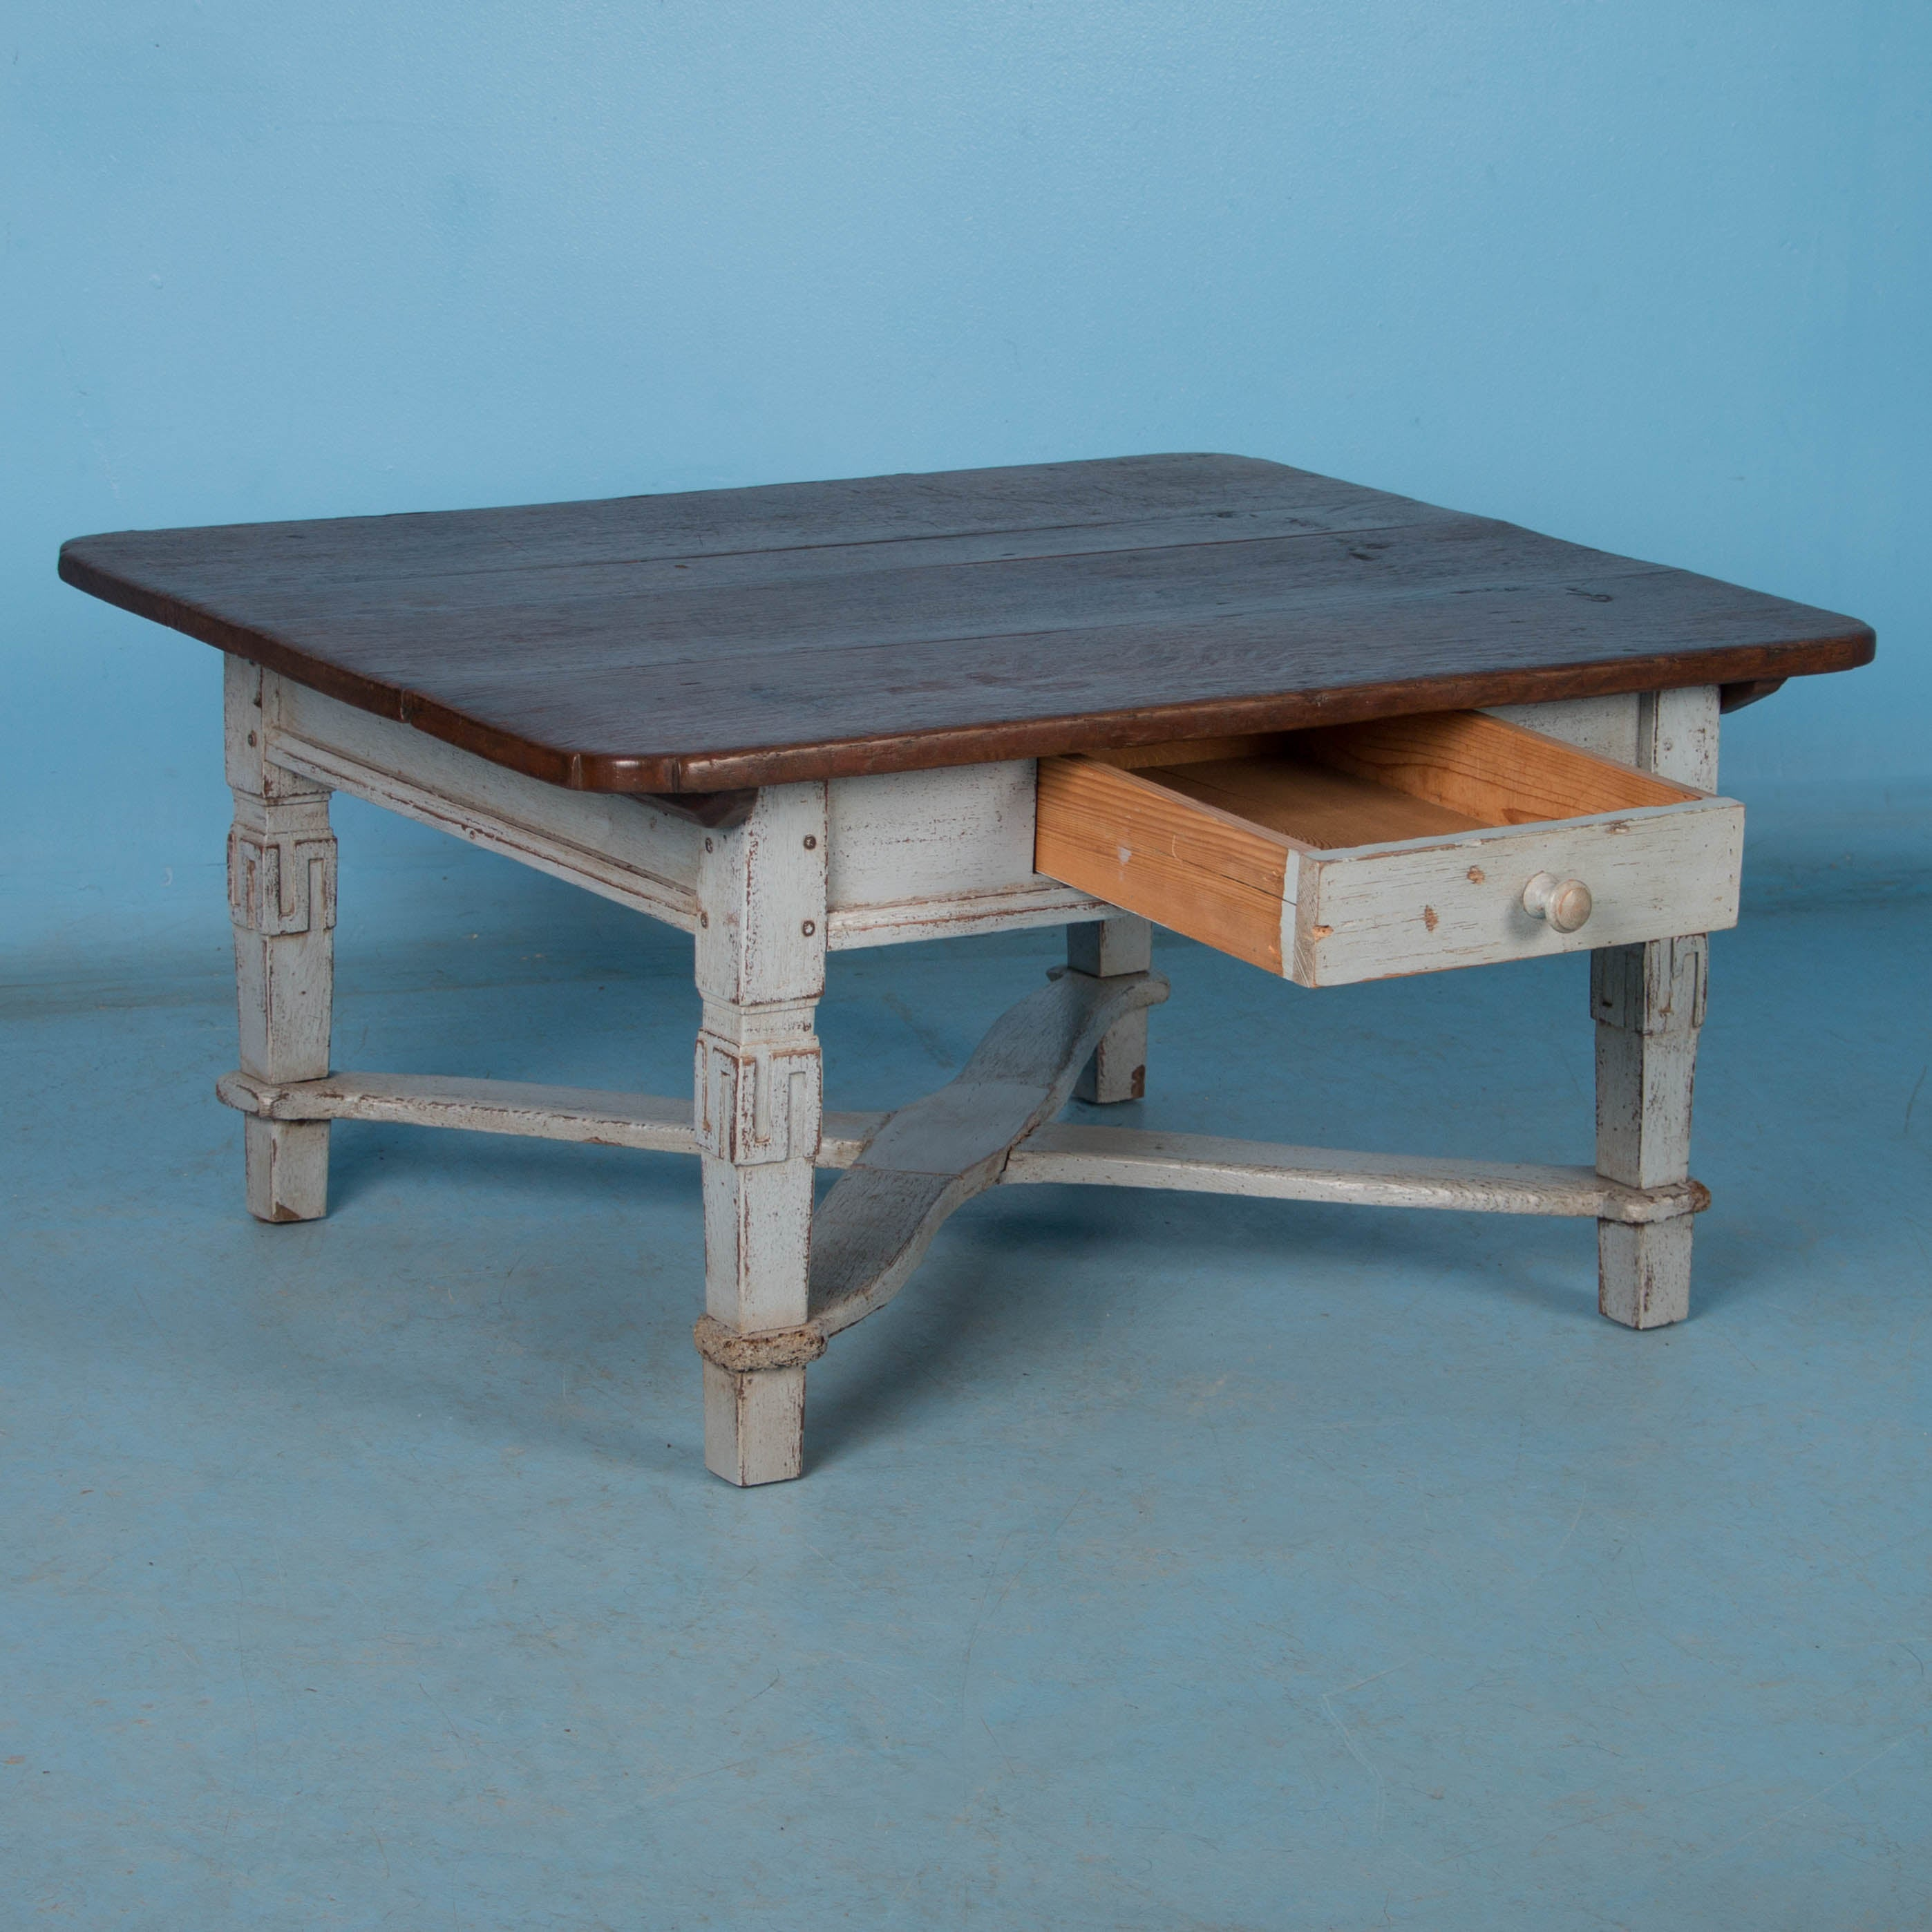 Antique Danish Coffee Table Painted Gray at 1stdibs